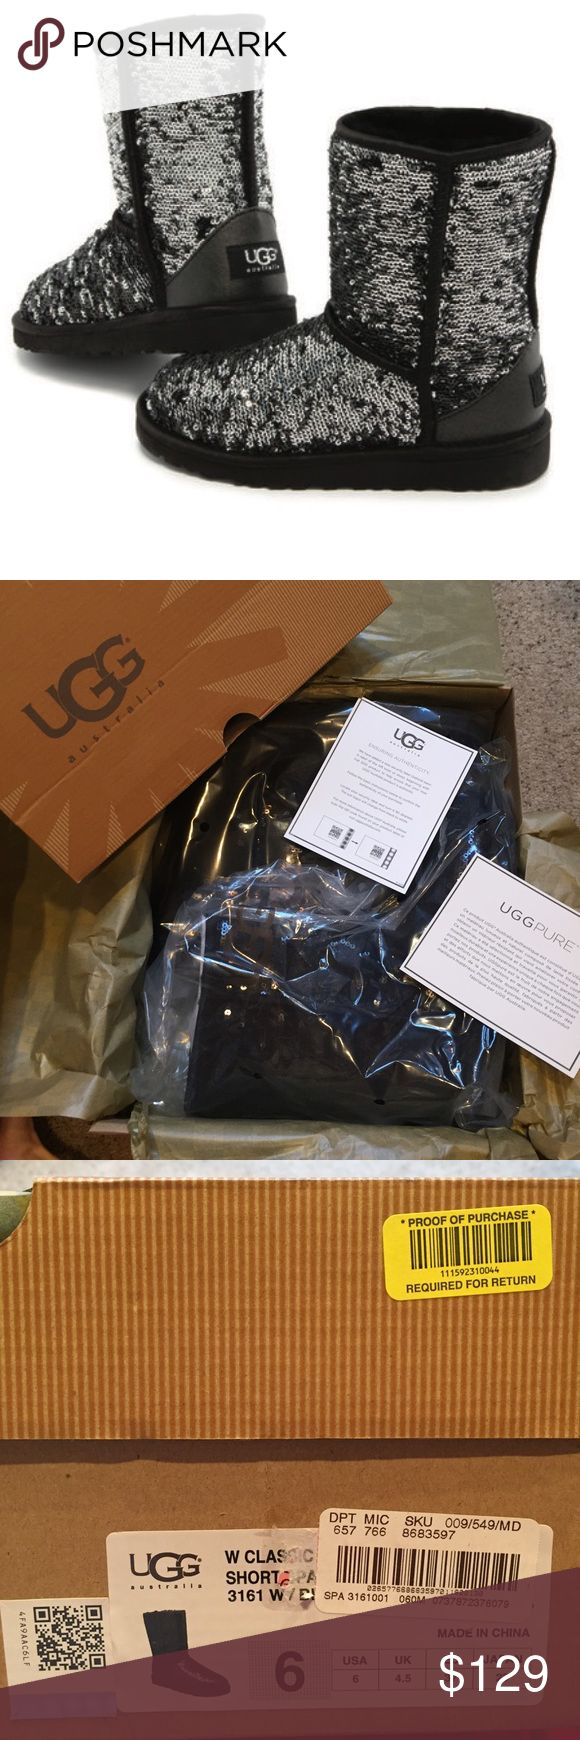 NEW UGG black Sequin Sparkle Boots 6 Brand new in original UGG box.  Black sequined Sparkle UGG boots in size 6.  Comes with authenticity card and care card. Genuine UGG... I don't sell knock-offs UGG Shoes Winter & Rain Boots